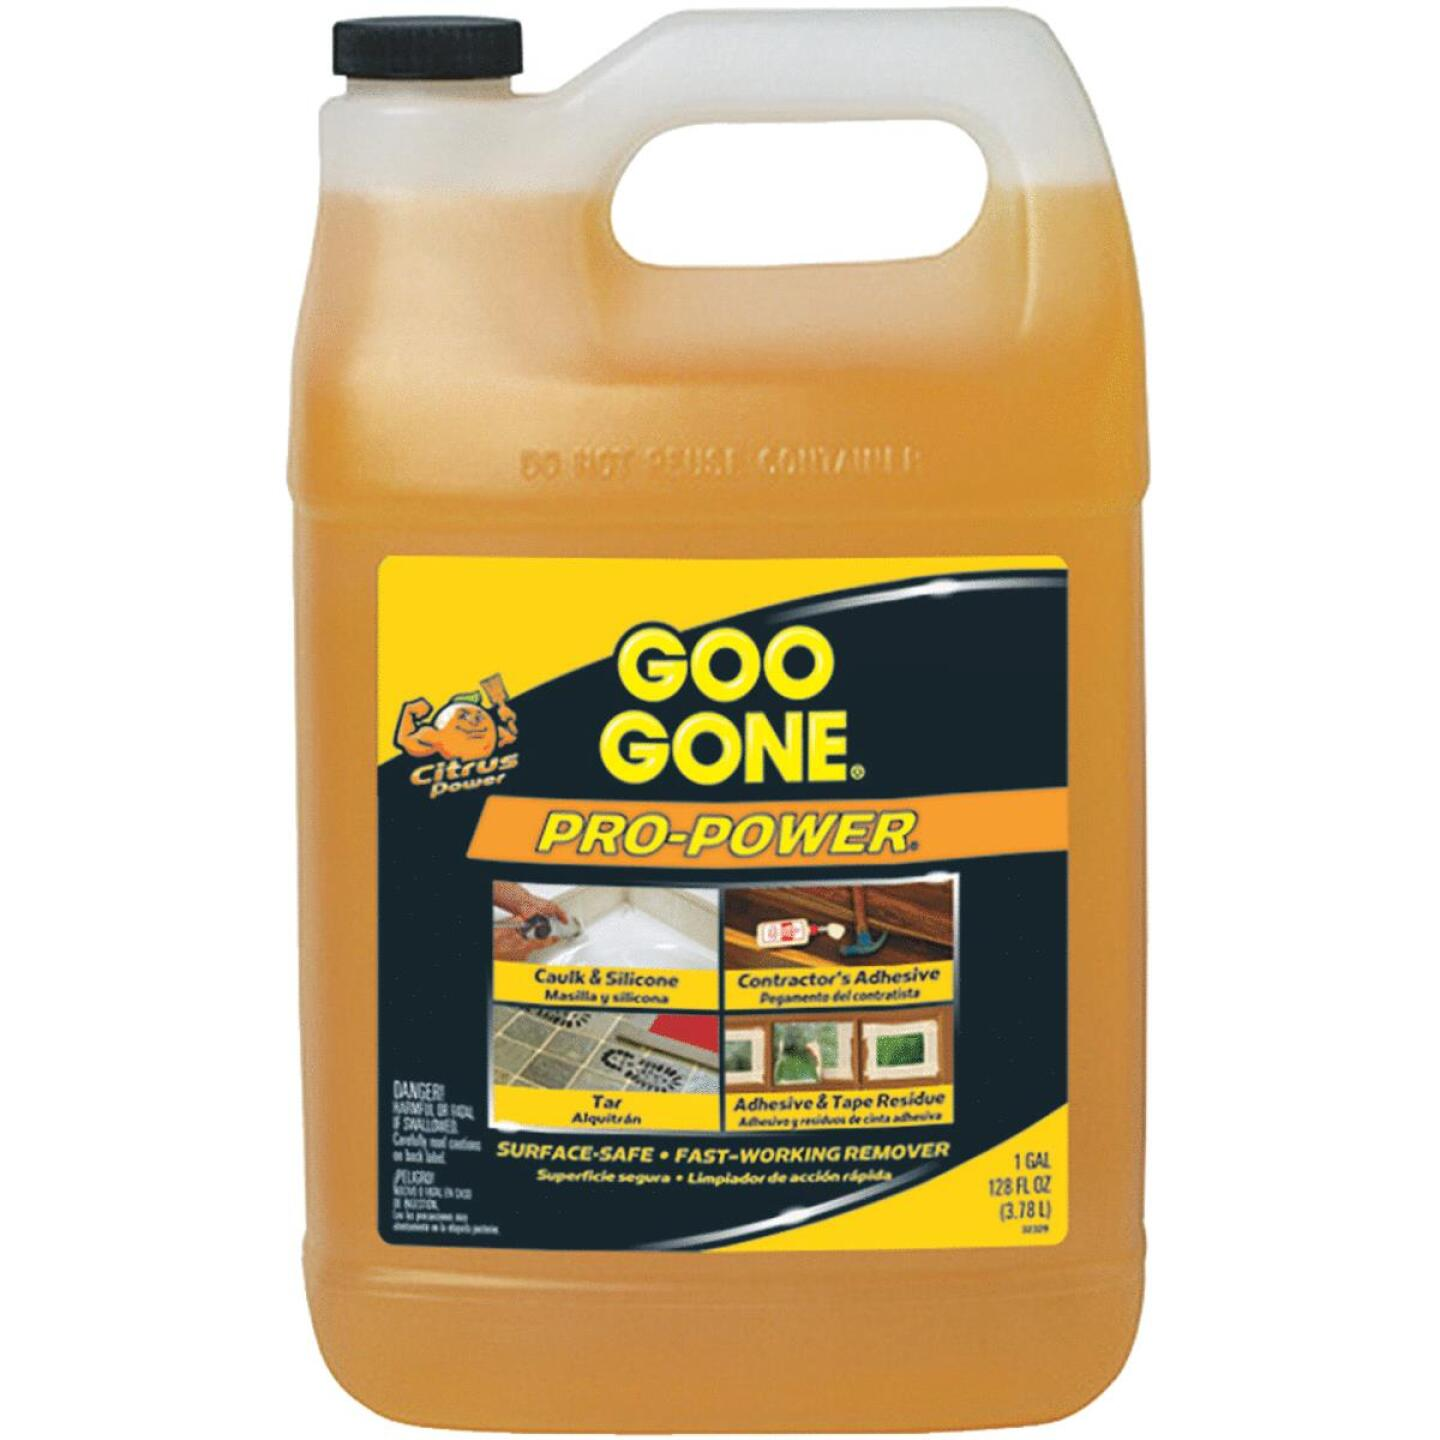 Goo Gone 1 Gal. Pro-Power Adhesive Remover Image 230